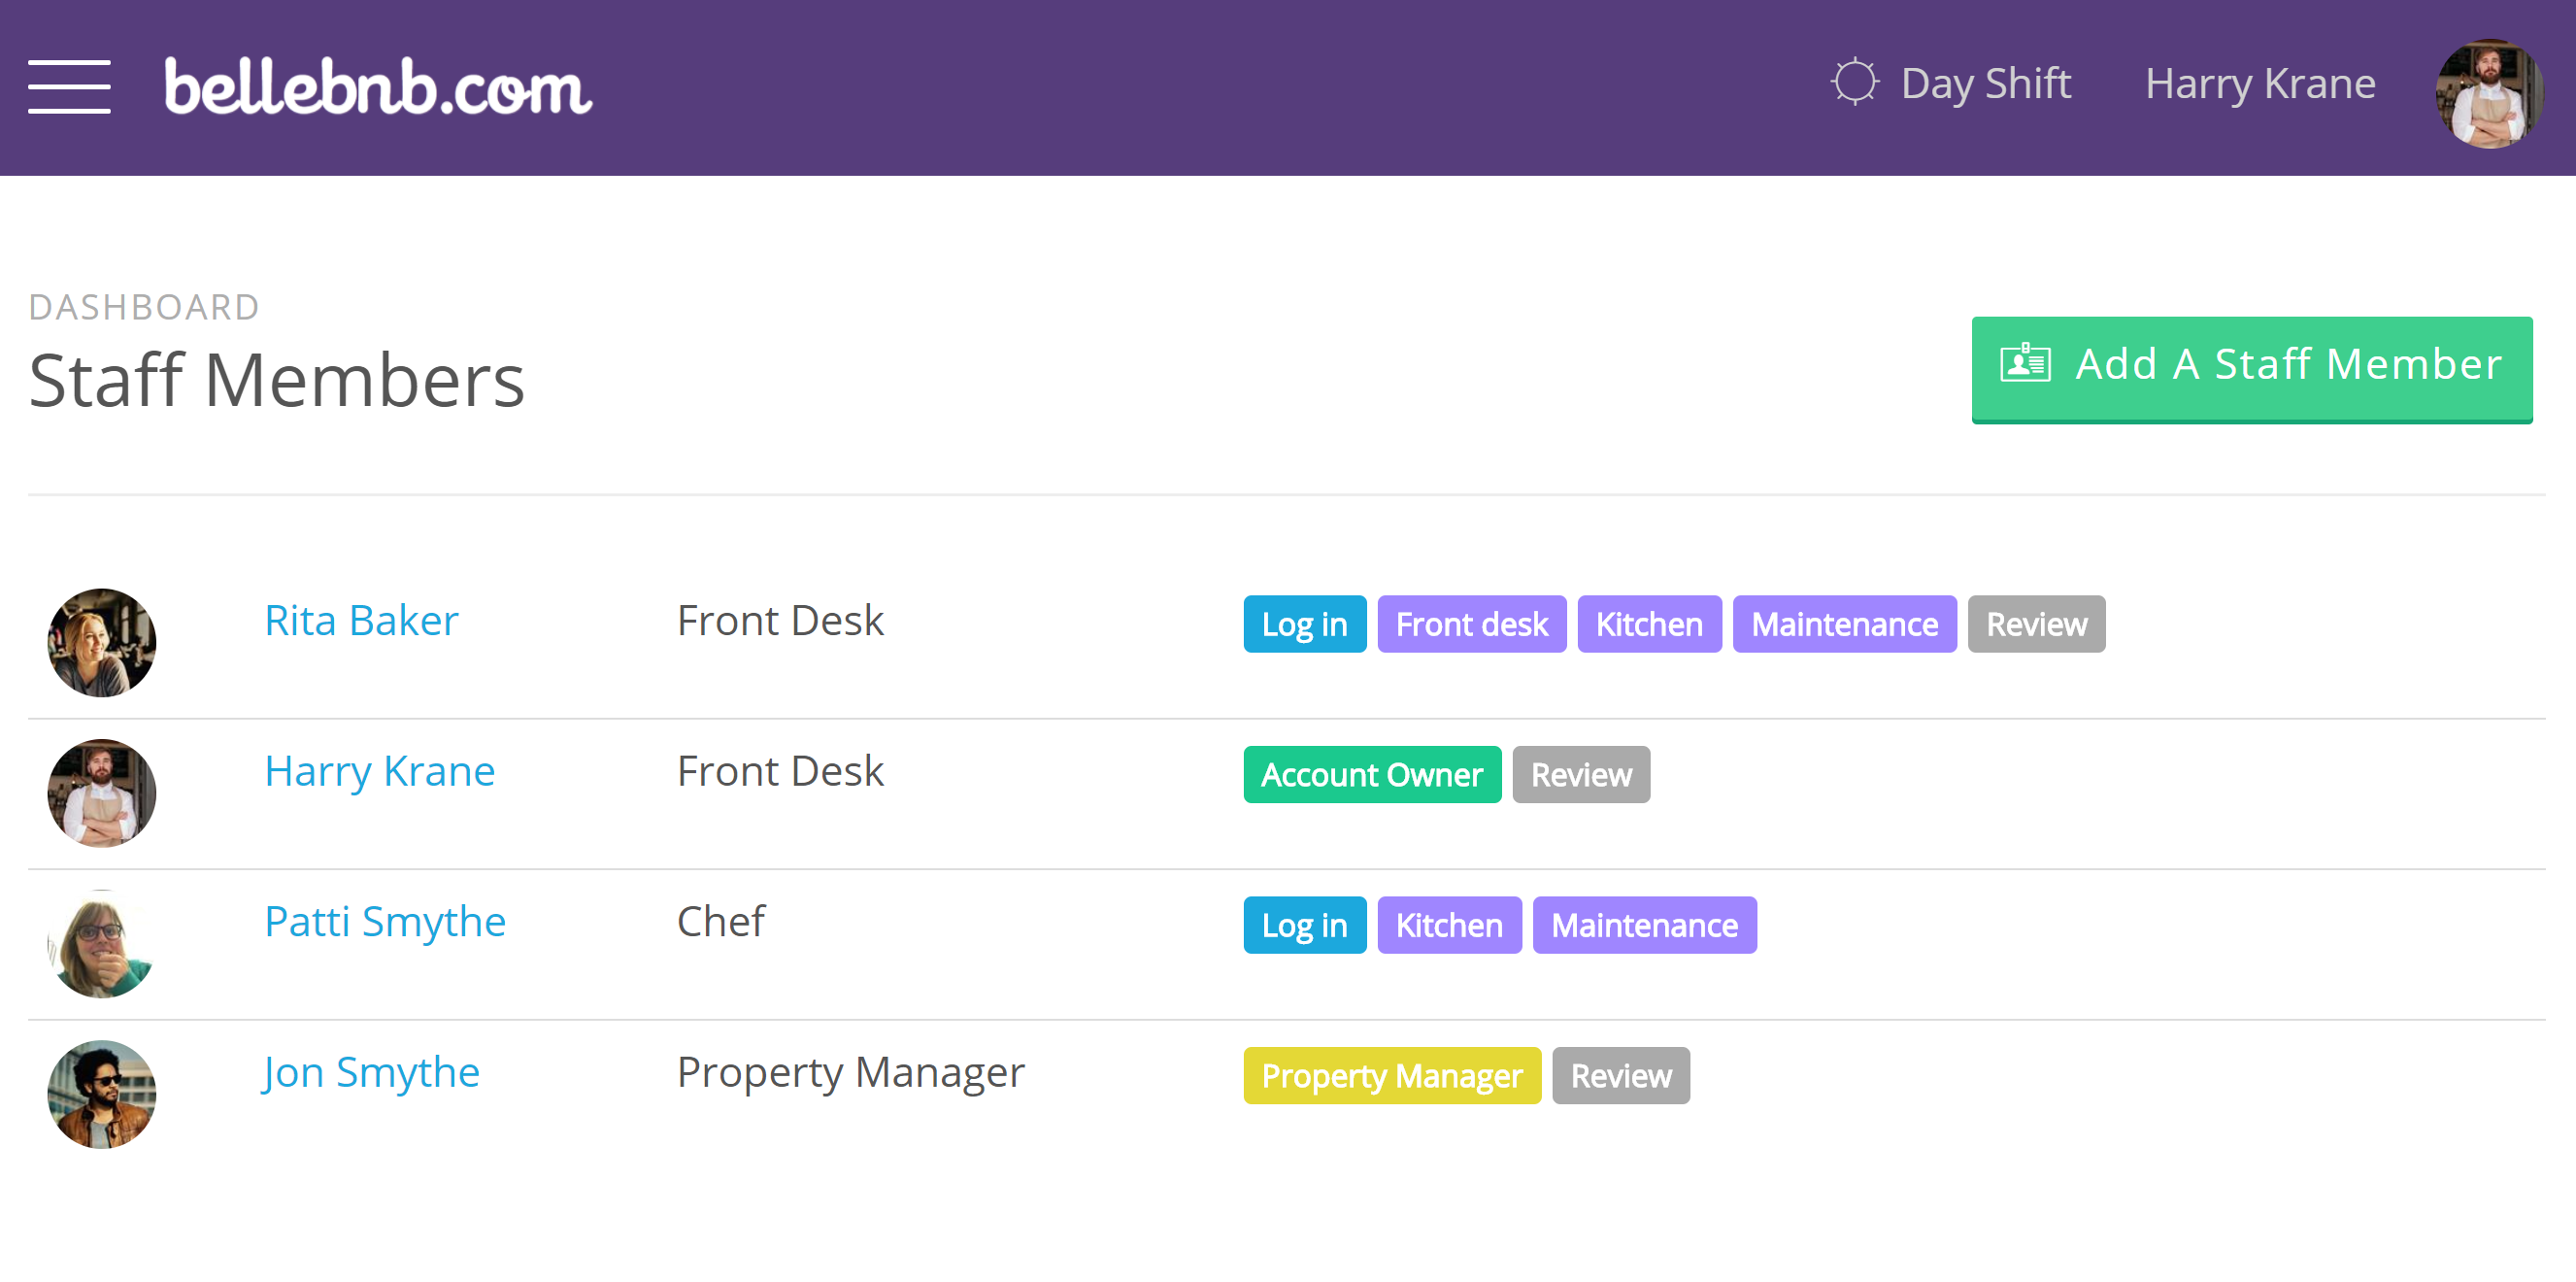 Front Desk manager, we have added a new user type: Property Manager. Property Managers have the same access level as the Account Owner, but they are limited to the properties assigned to them.